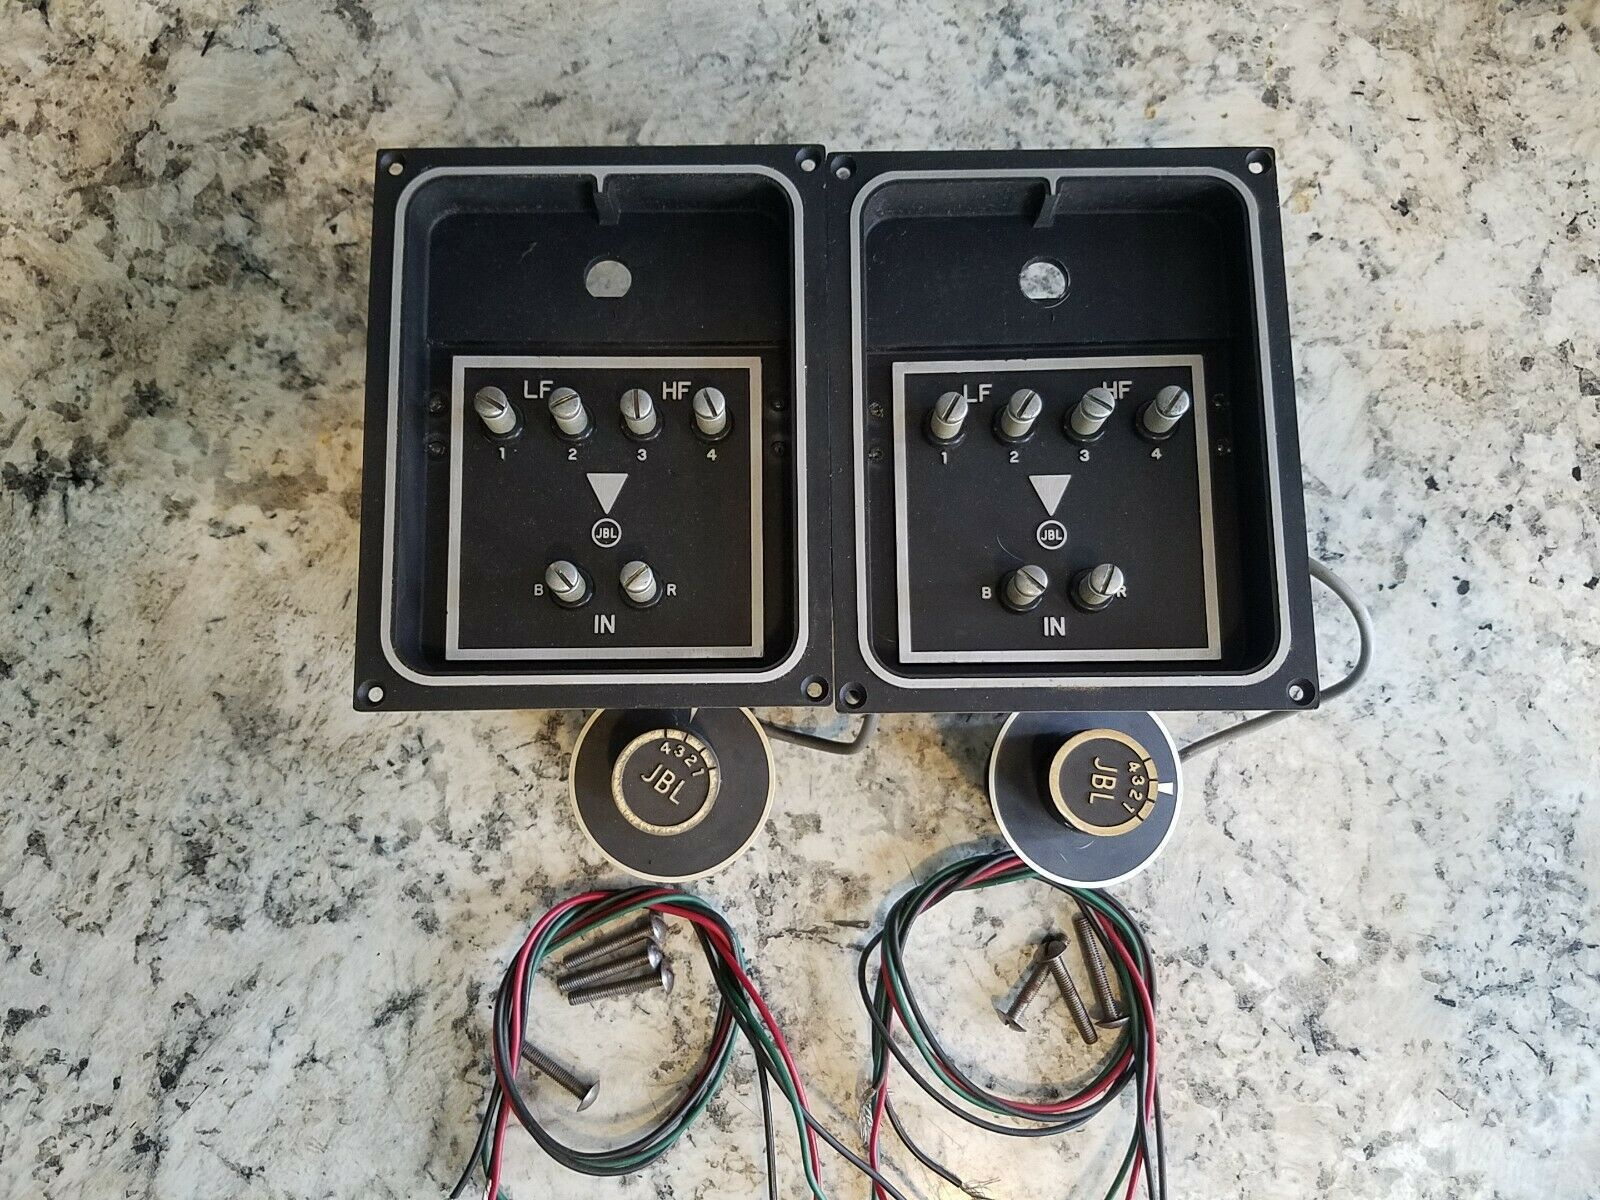 s l1600 - JBL N2400 Crossovers for Speakers 075 D130 D131 D123 C36 C38 & Others